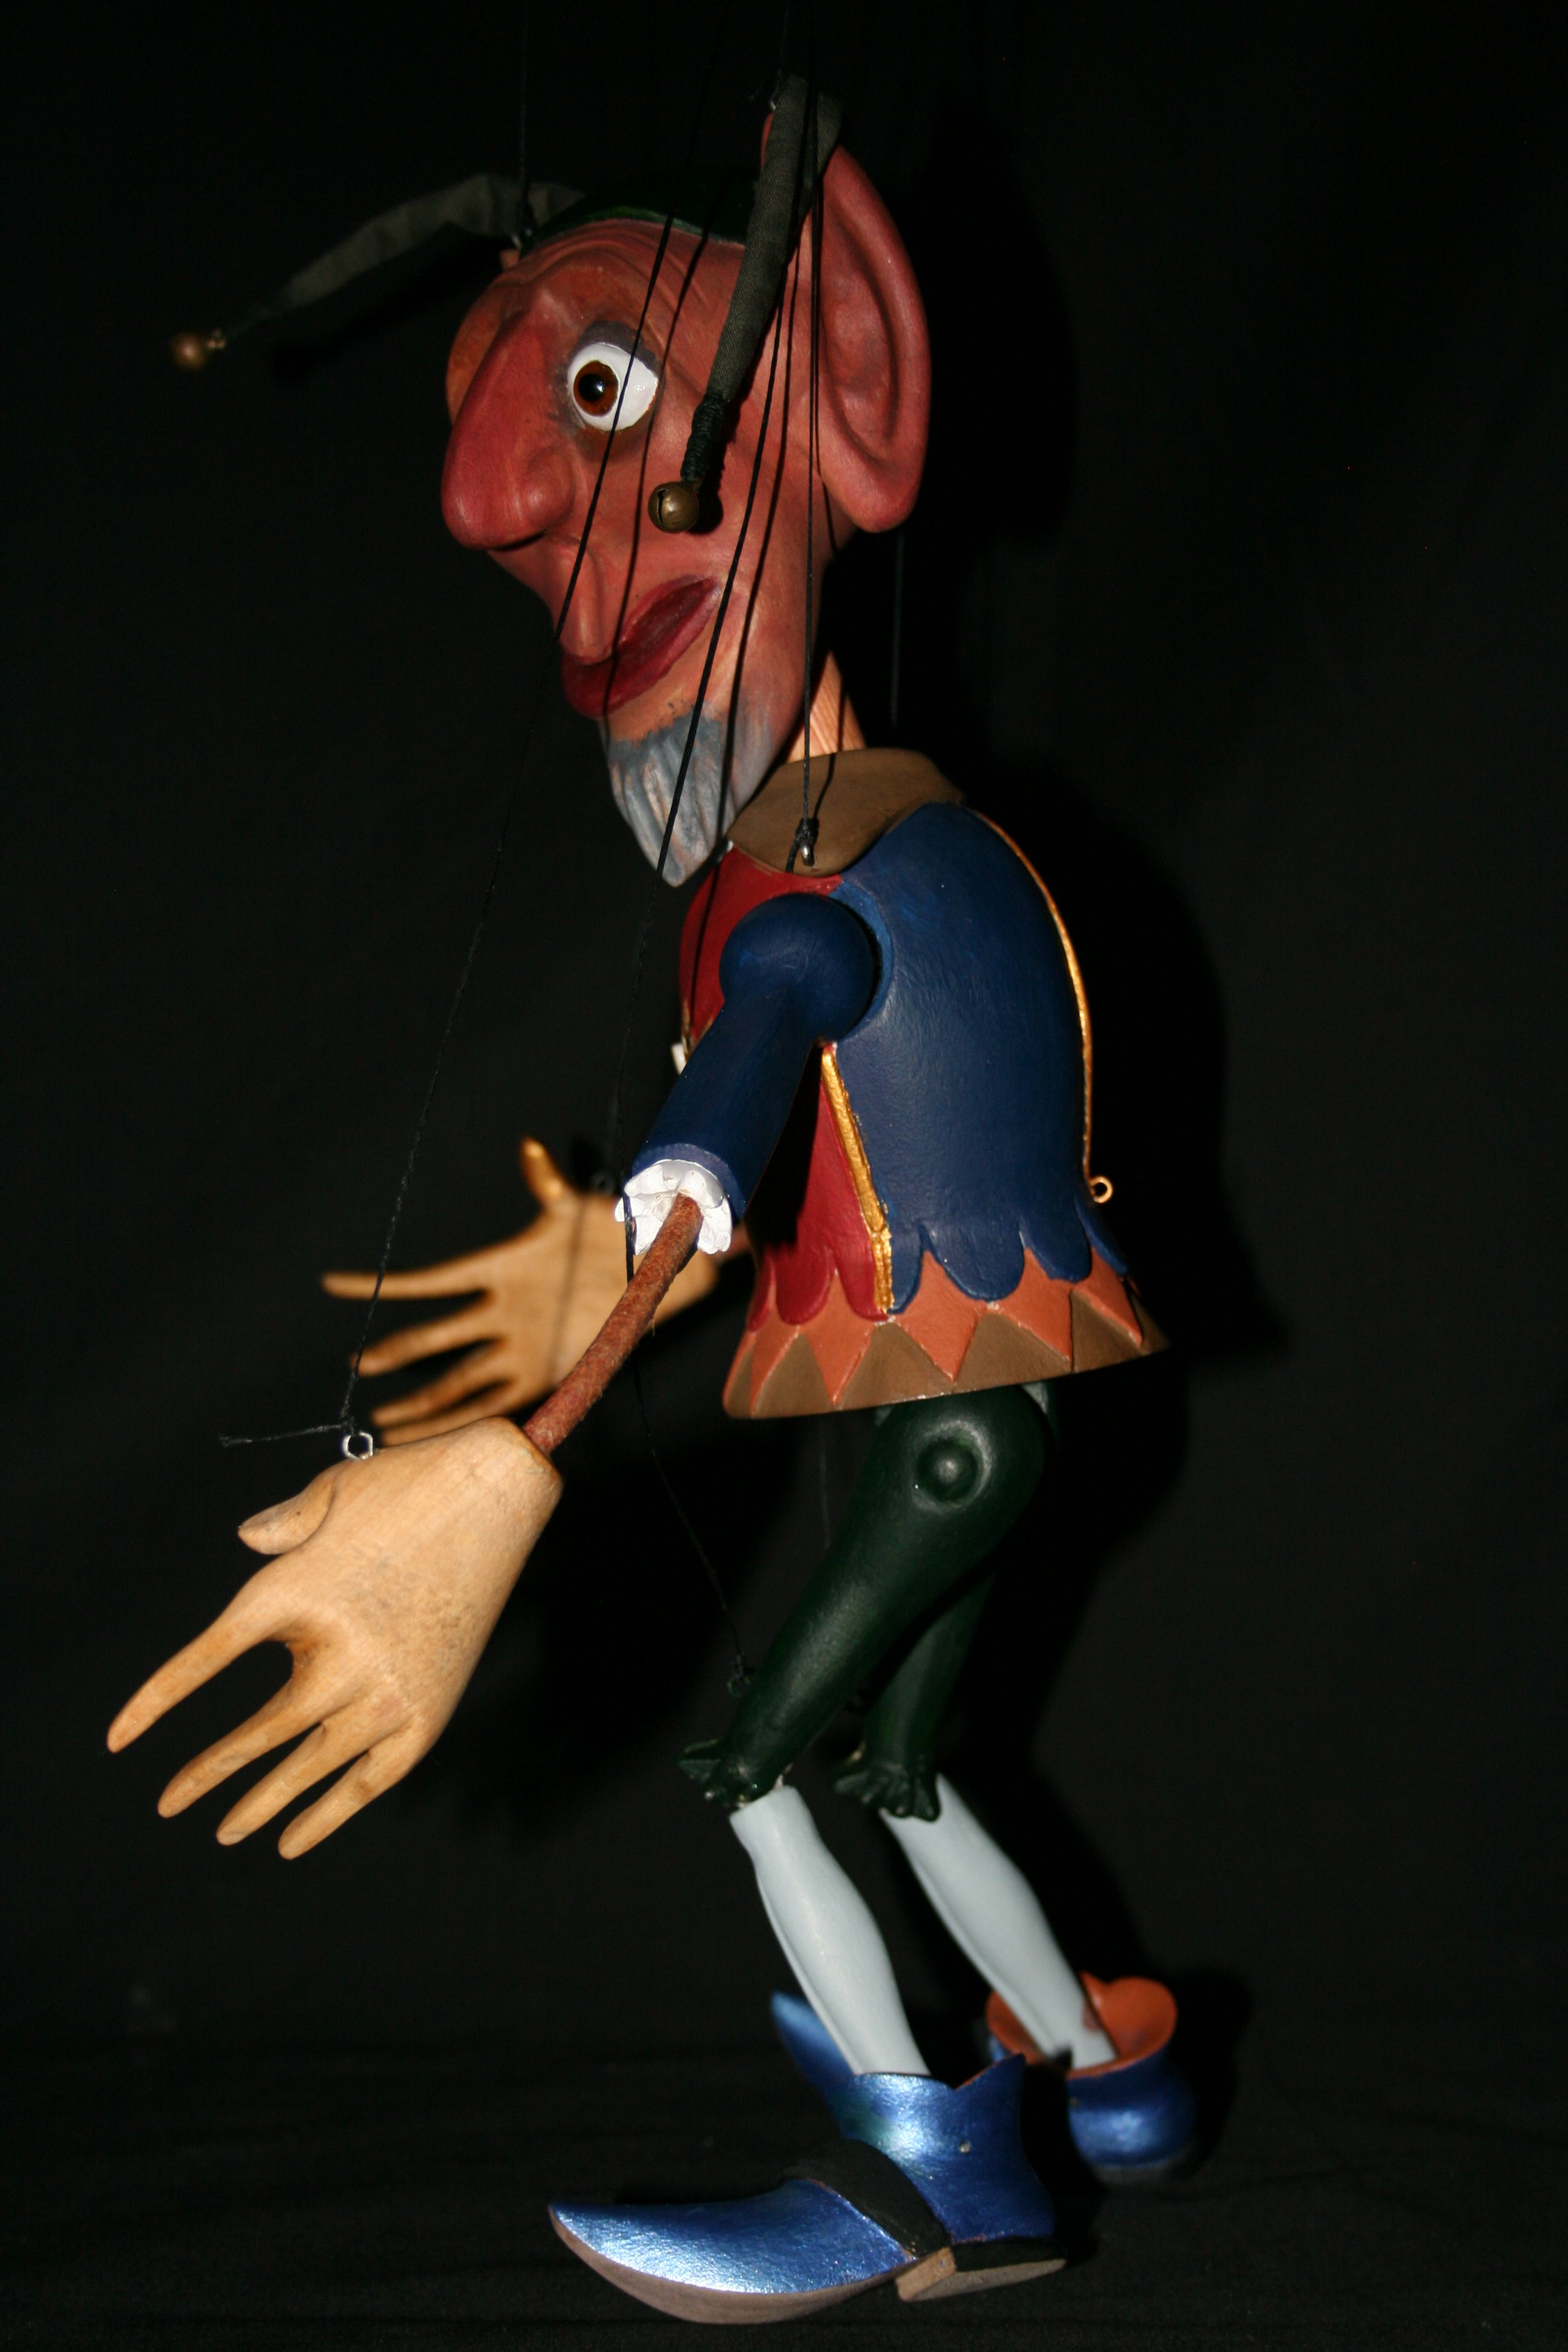 A Small Marionette Of The Renown German Folk Character Till